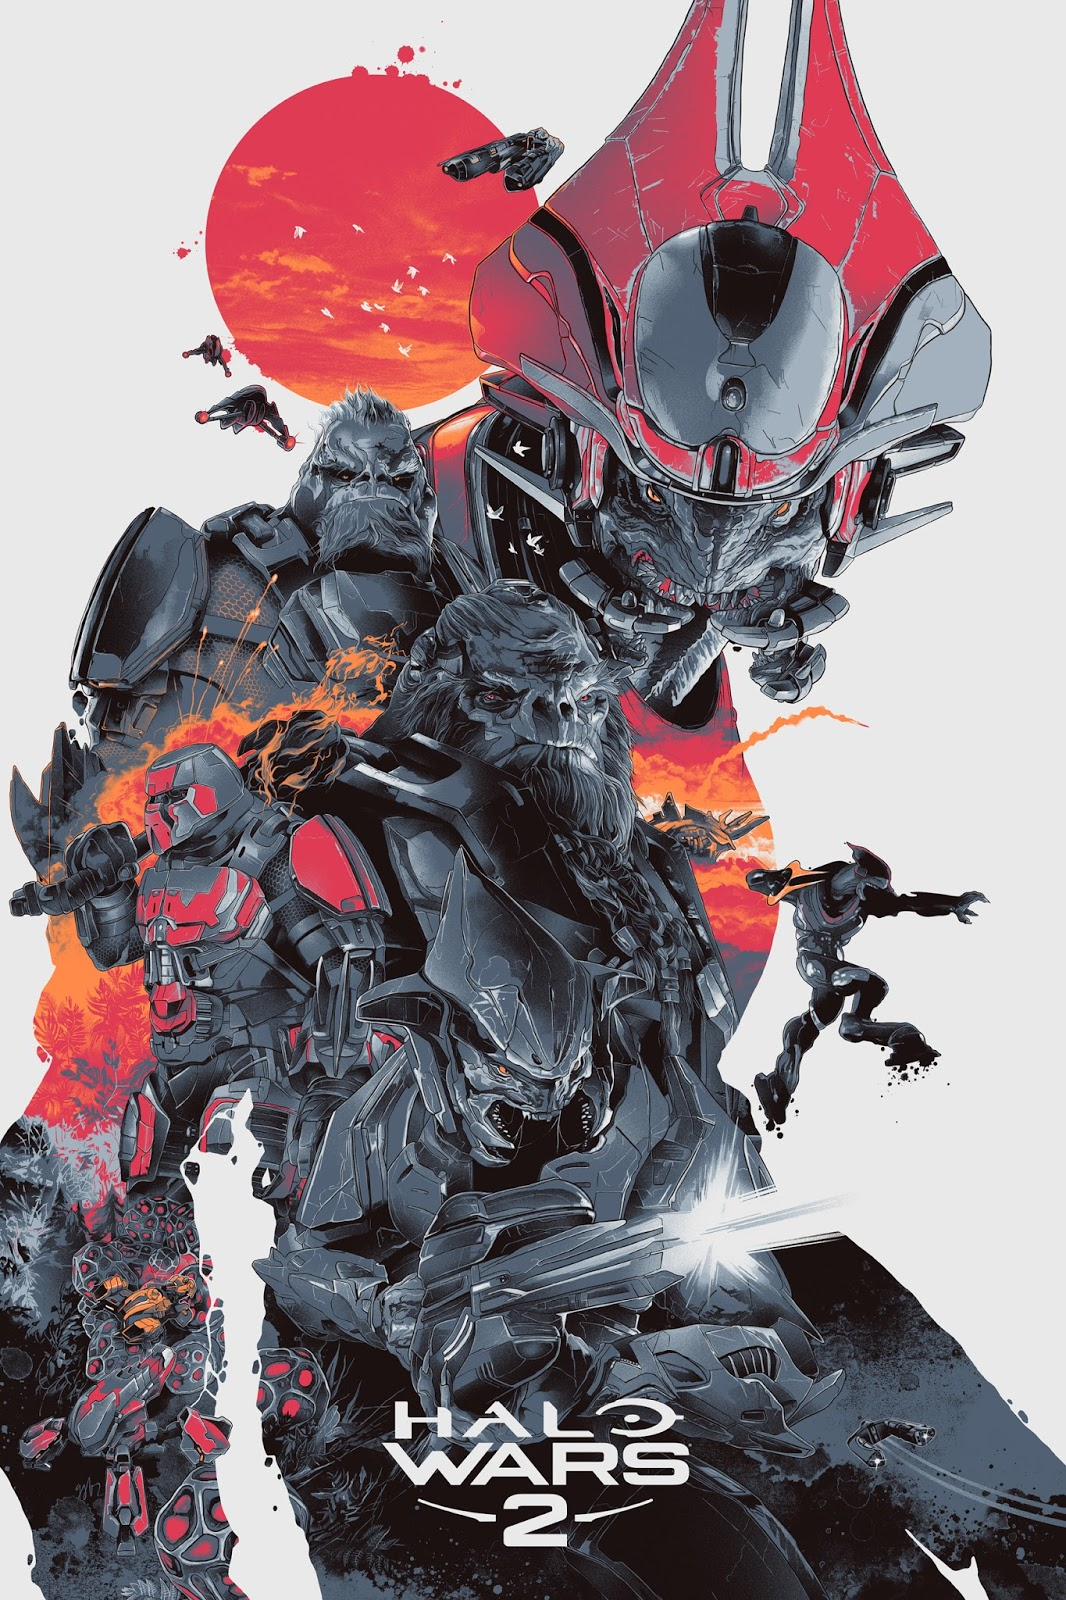 Inside The Rock Poster Frame Blog  Halo Wars 2 Posters By Kevin Tong Gabz And Craig Drake